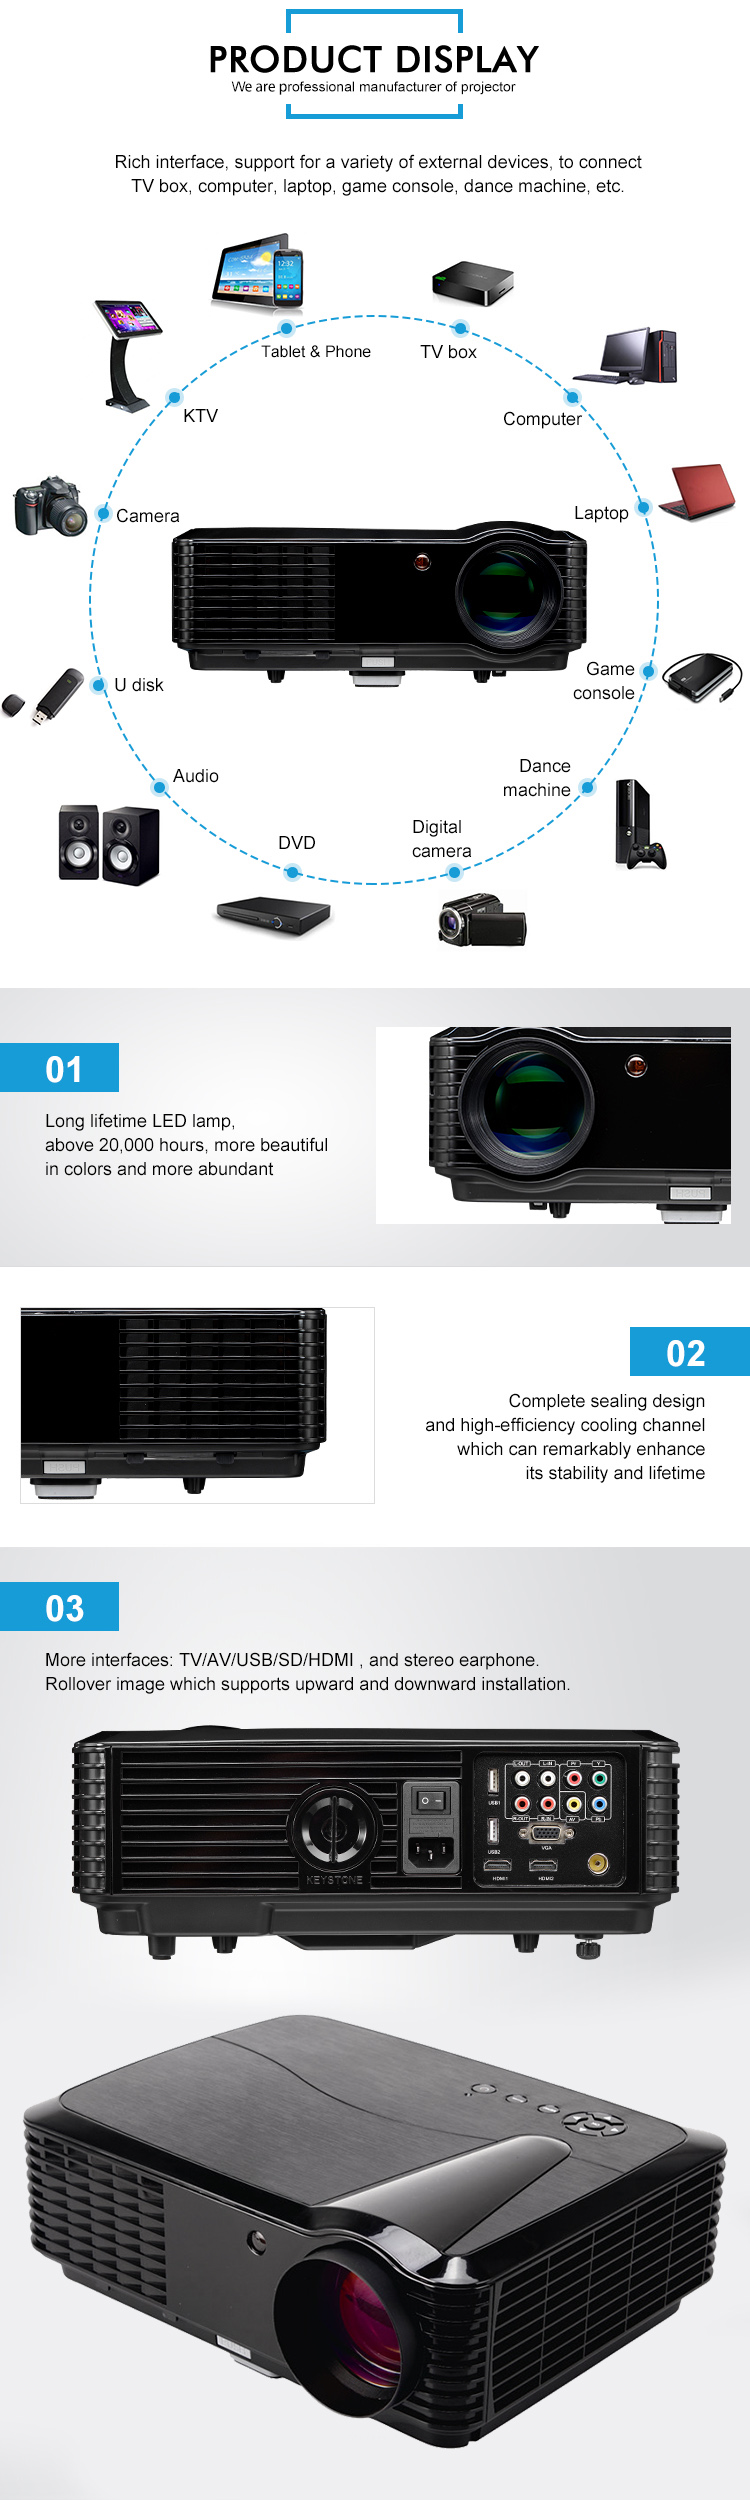 RD-806B High Quality 1280*800 Full HD 3D LED Projector Android 4.2 for Business Office Meeting Education Home Entertainment Use